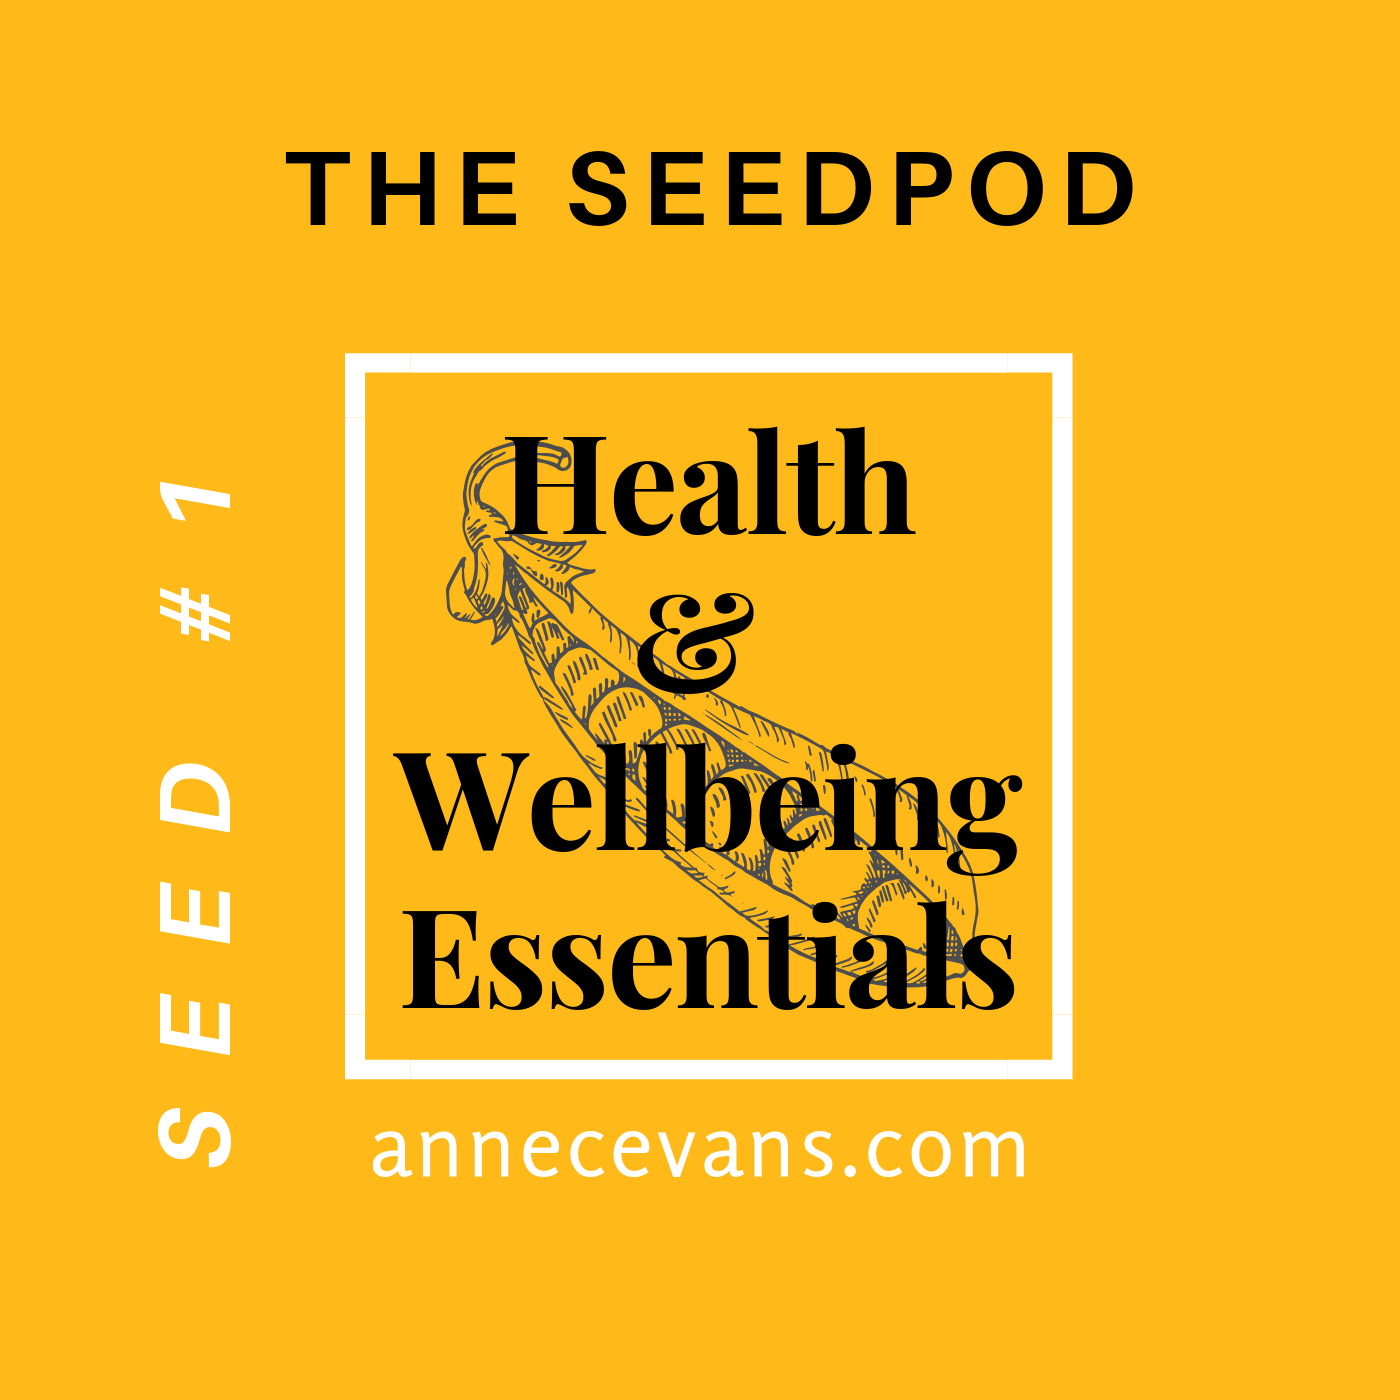 Alt=The Seedpod Podcast #1: Health & Wellbeing Essentials on a golden yellow cover'